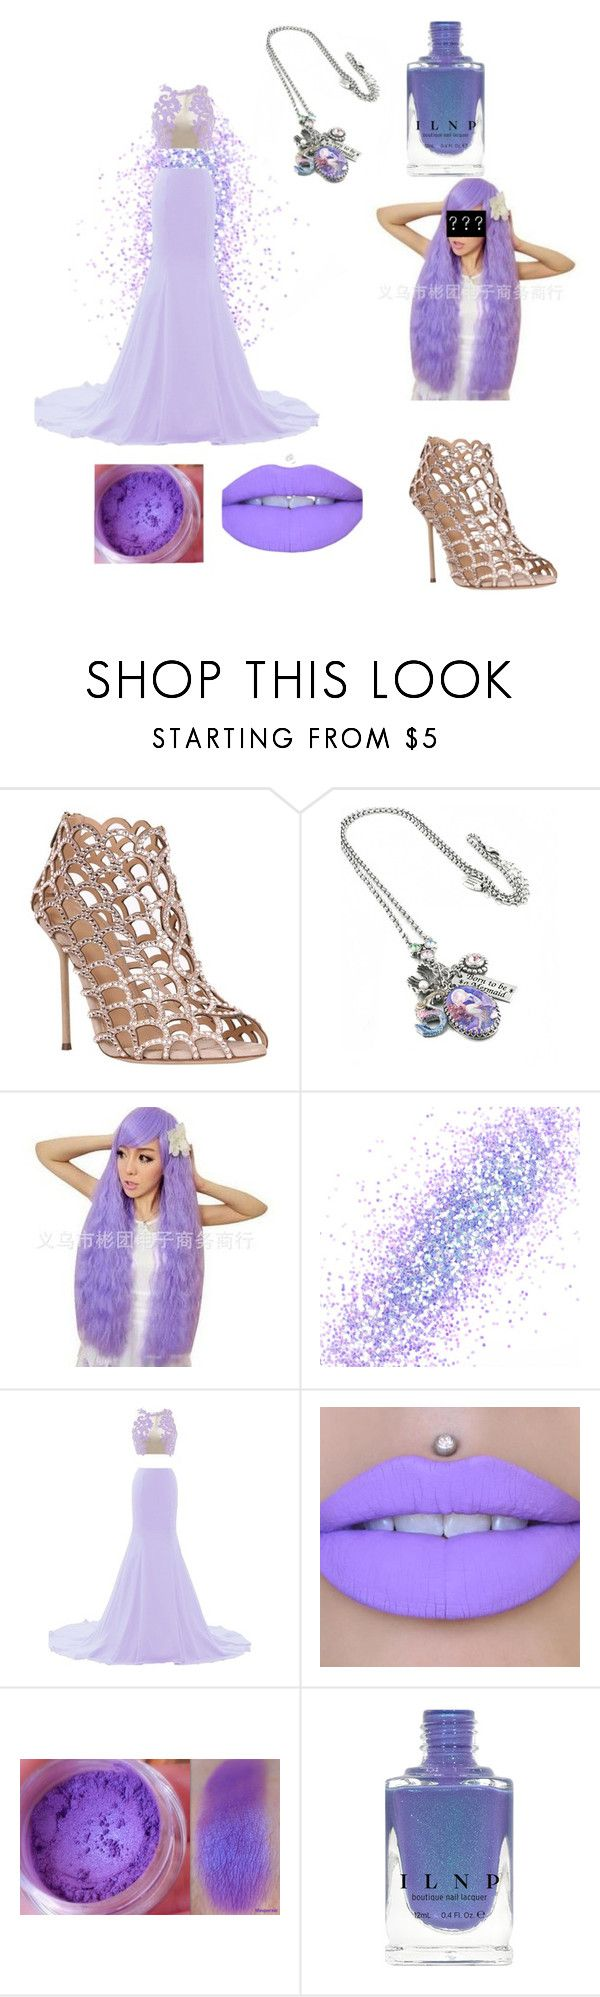 """Mermaids Swim (Collection)"" by skye-plays-too-many-video-games ❤ liked on Polyvore featuring Sergio Rossi, The Gypsy Shrine and Jeffree Star"